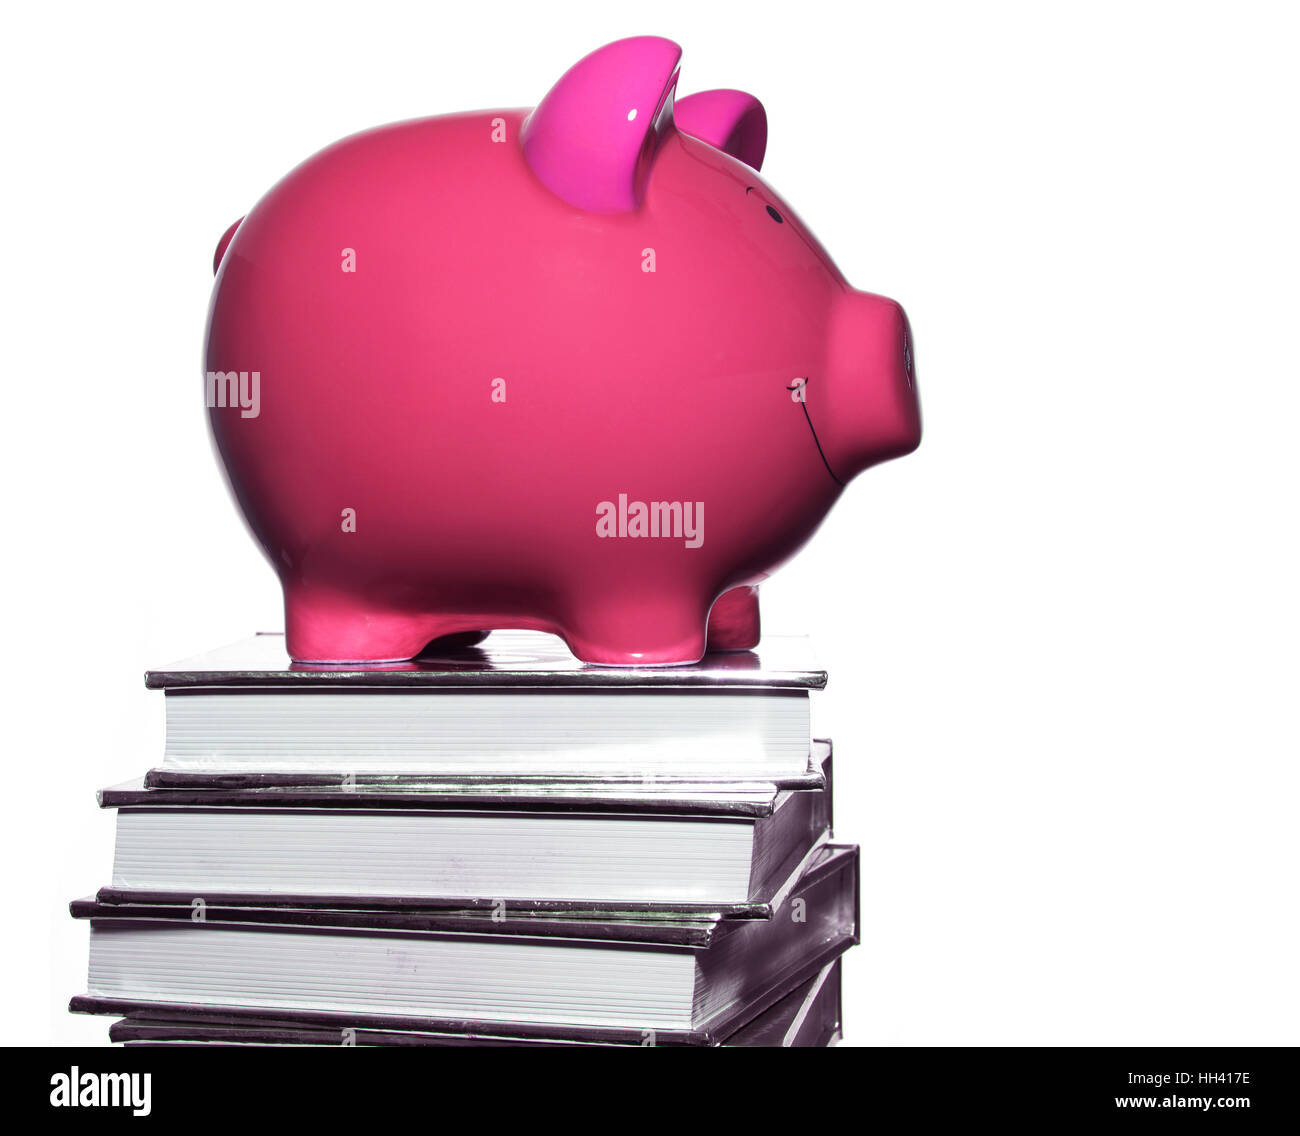 Pink Piggy Bank on book pile - Stock Image